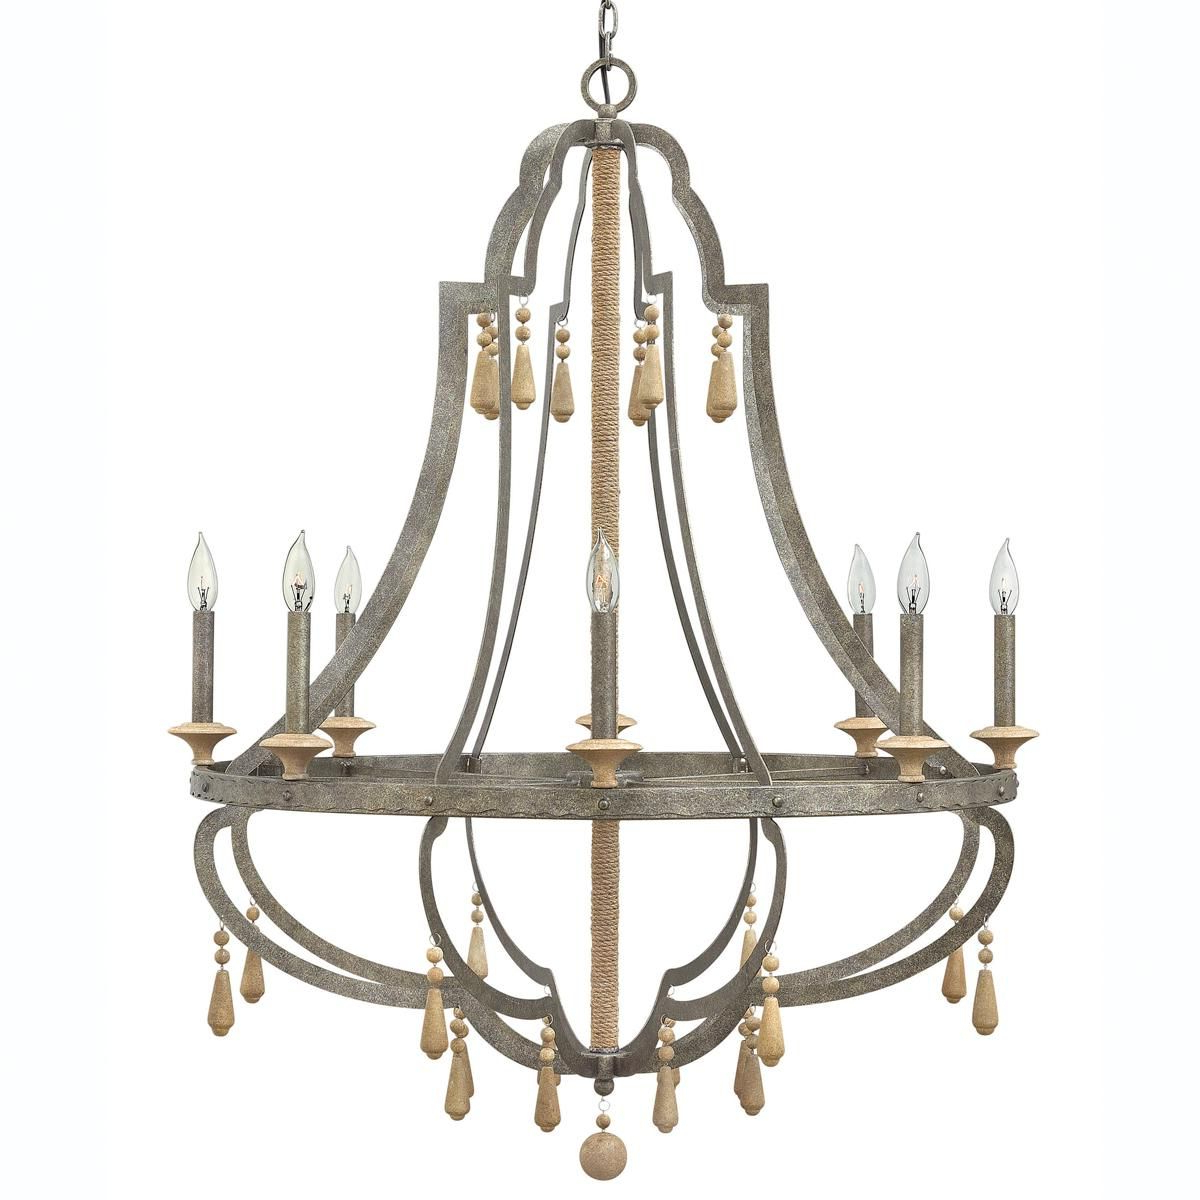 Kenna 5-Light Empire Chandeliers intended for Most Popular Bohemian Inspired Chandelier - Large